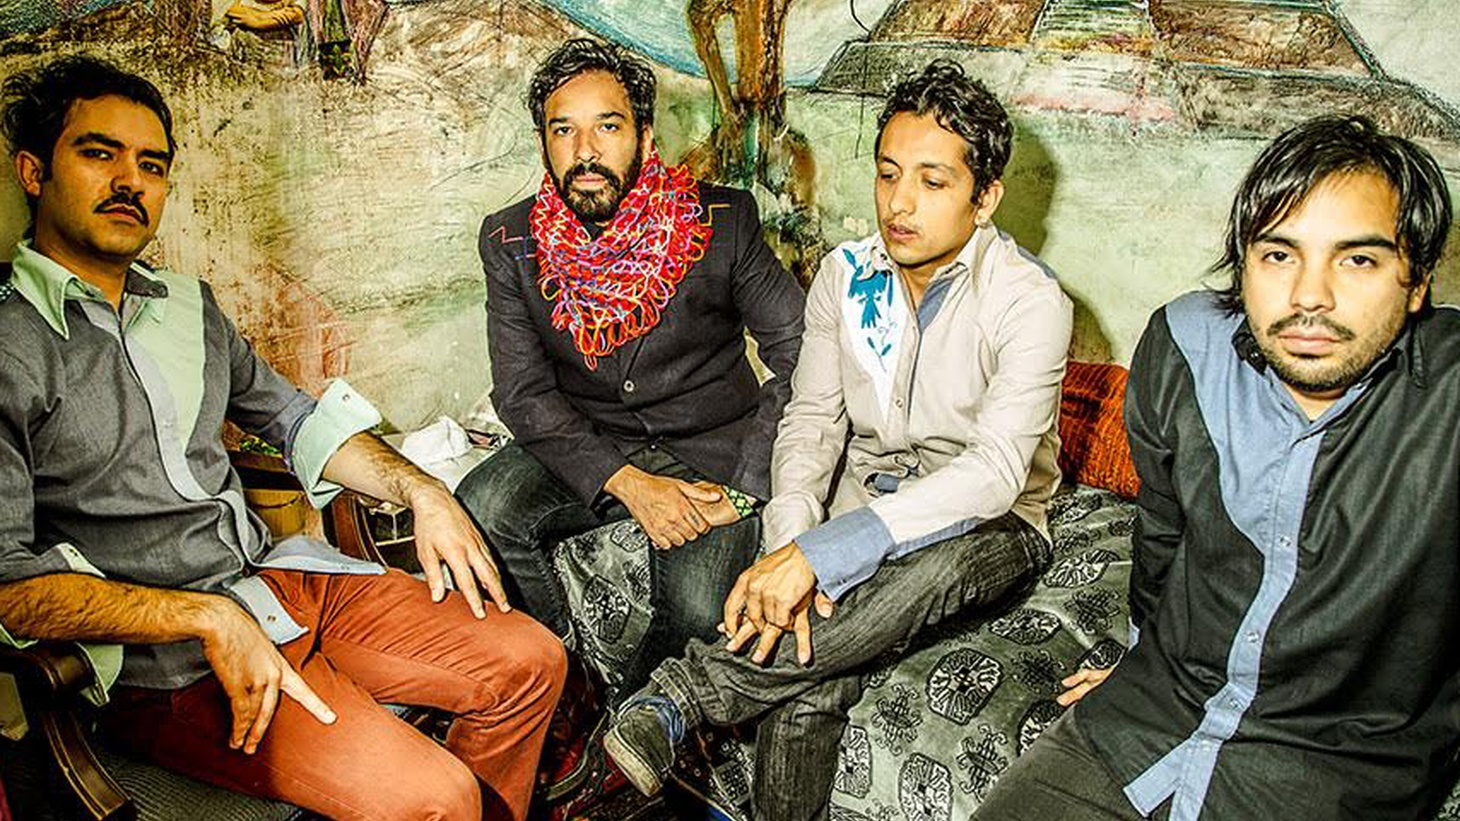 LAMC-bound band Centavrvs began as a tribute to the Mexican Revolution, but ended up praising love and romance.